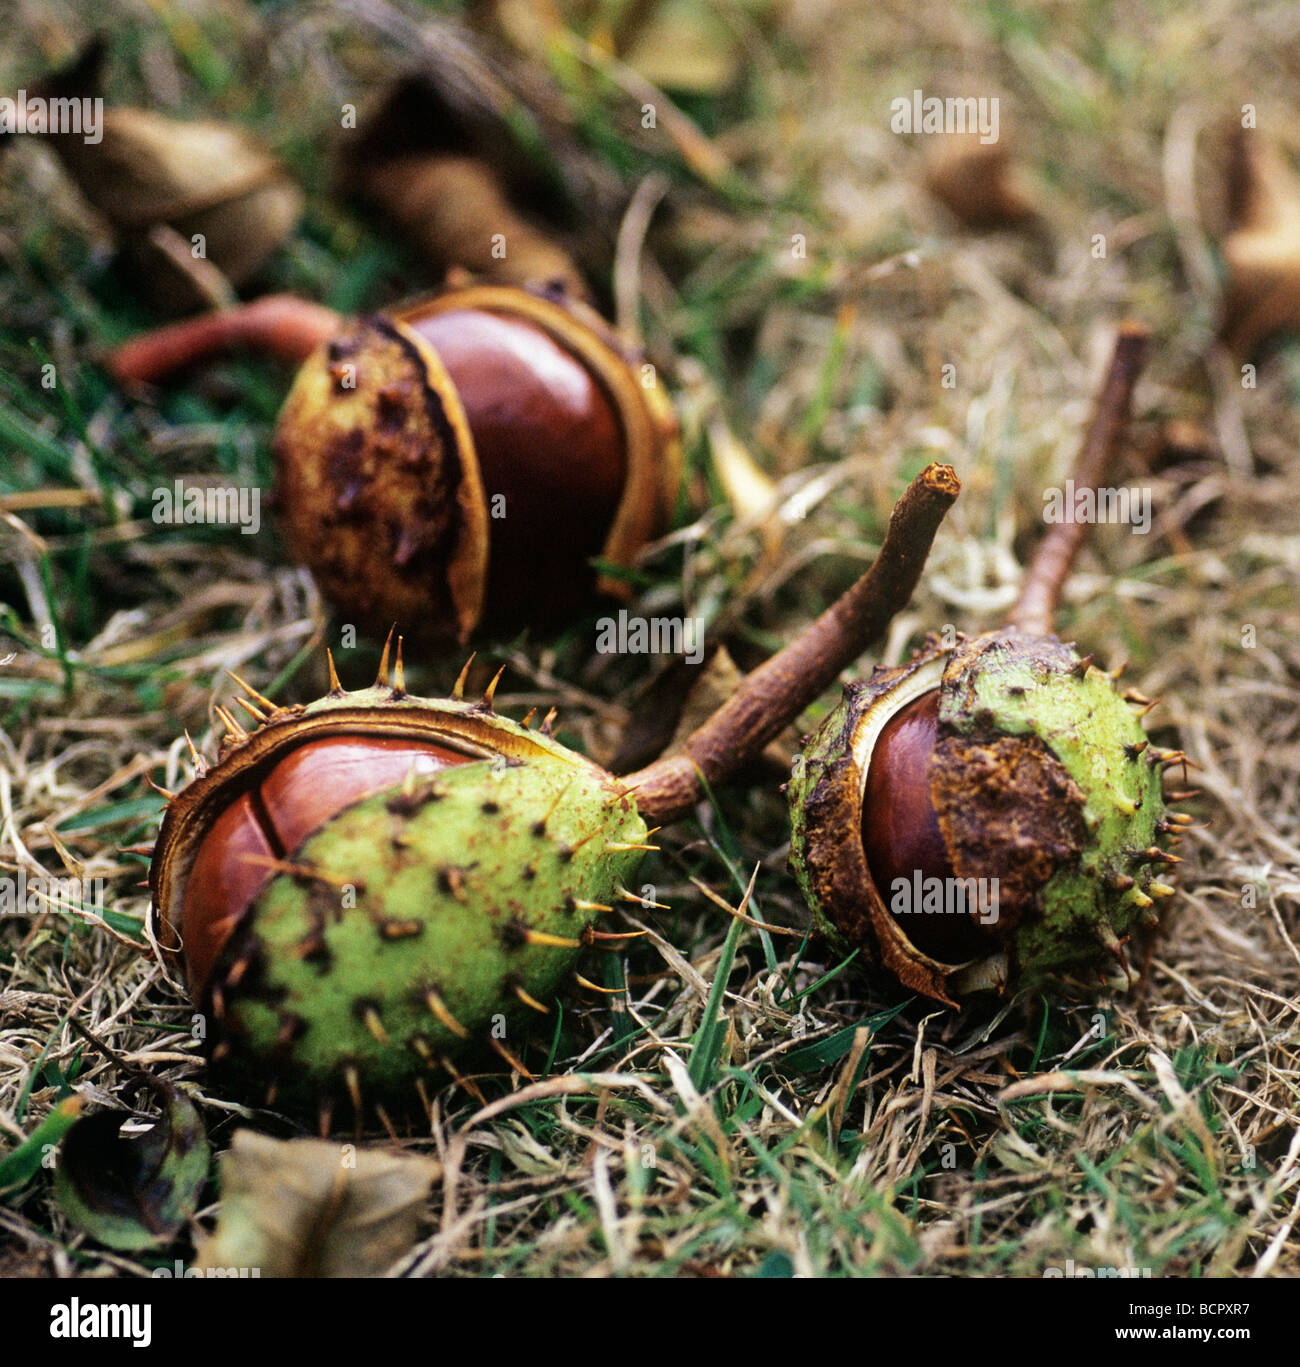 Aesculus hippocastanum Horse chestnut fruit or conkers on the ground emerging from prickly shells. - Stock Image